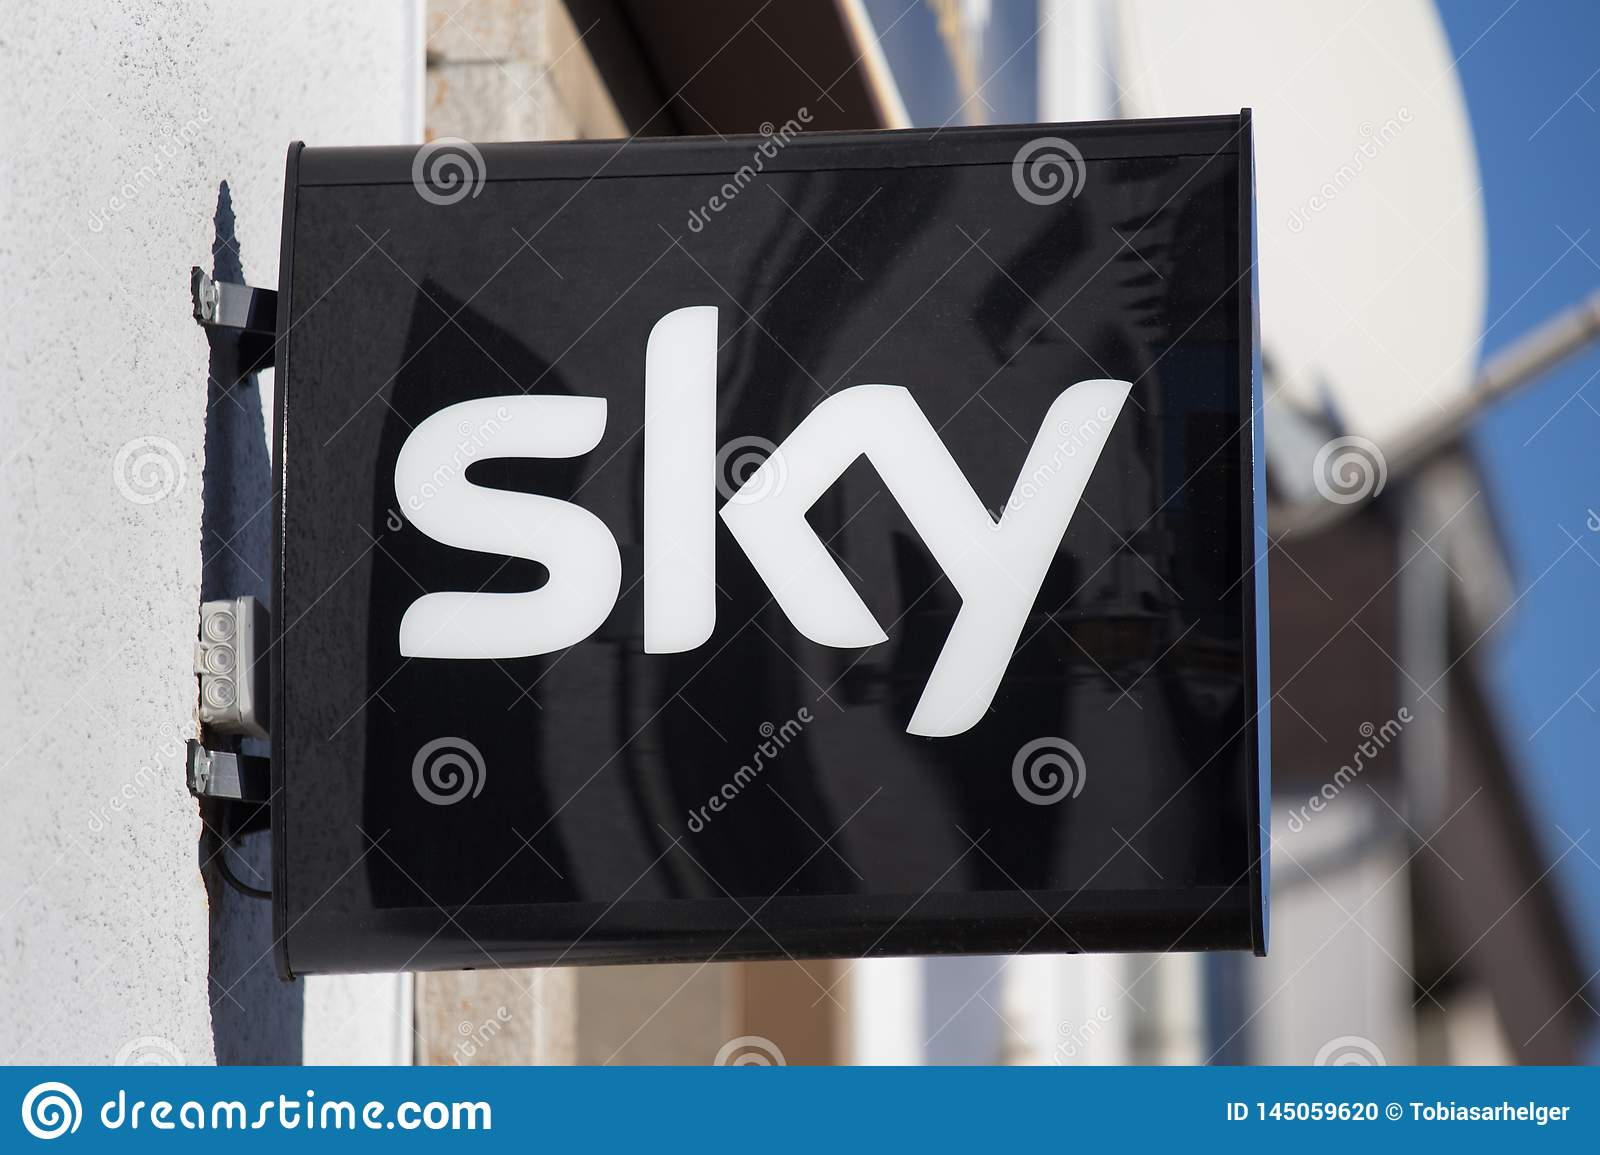 Sky sign in haiger germany